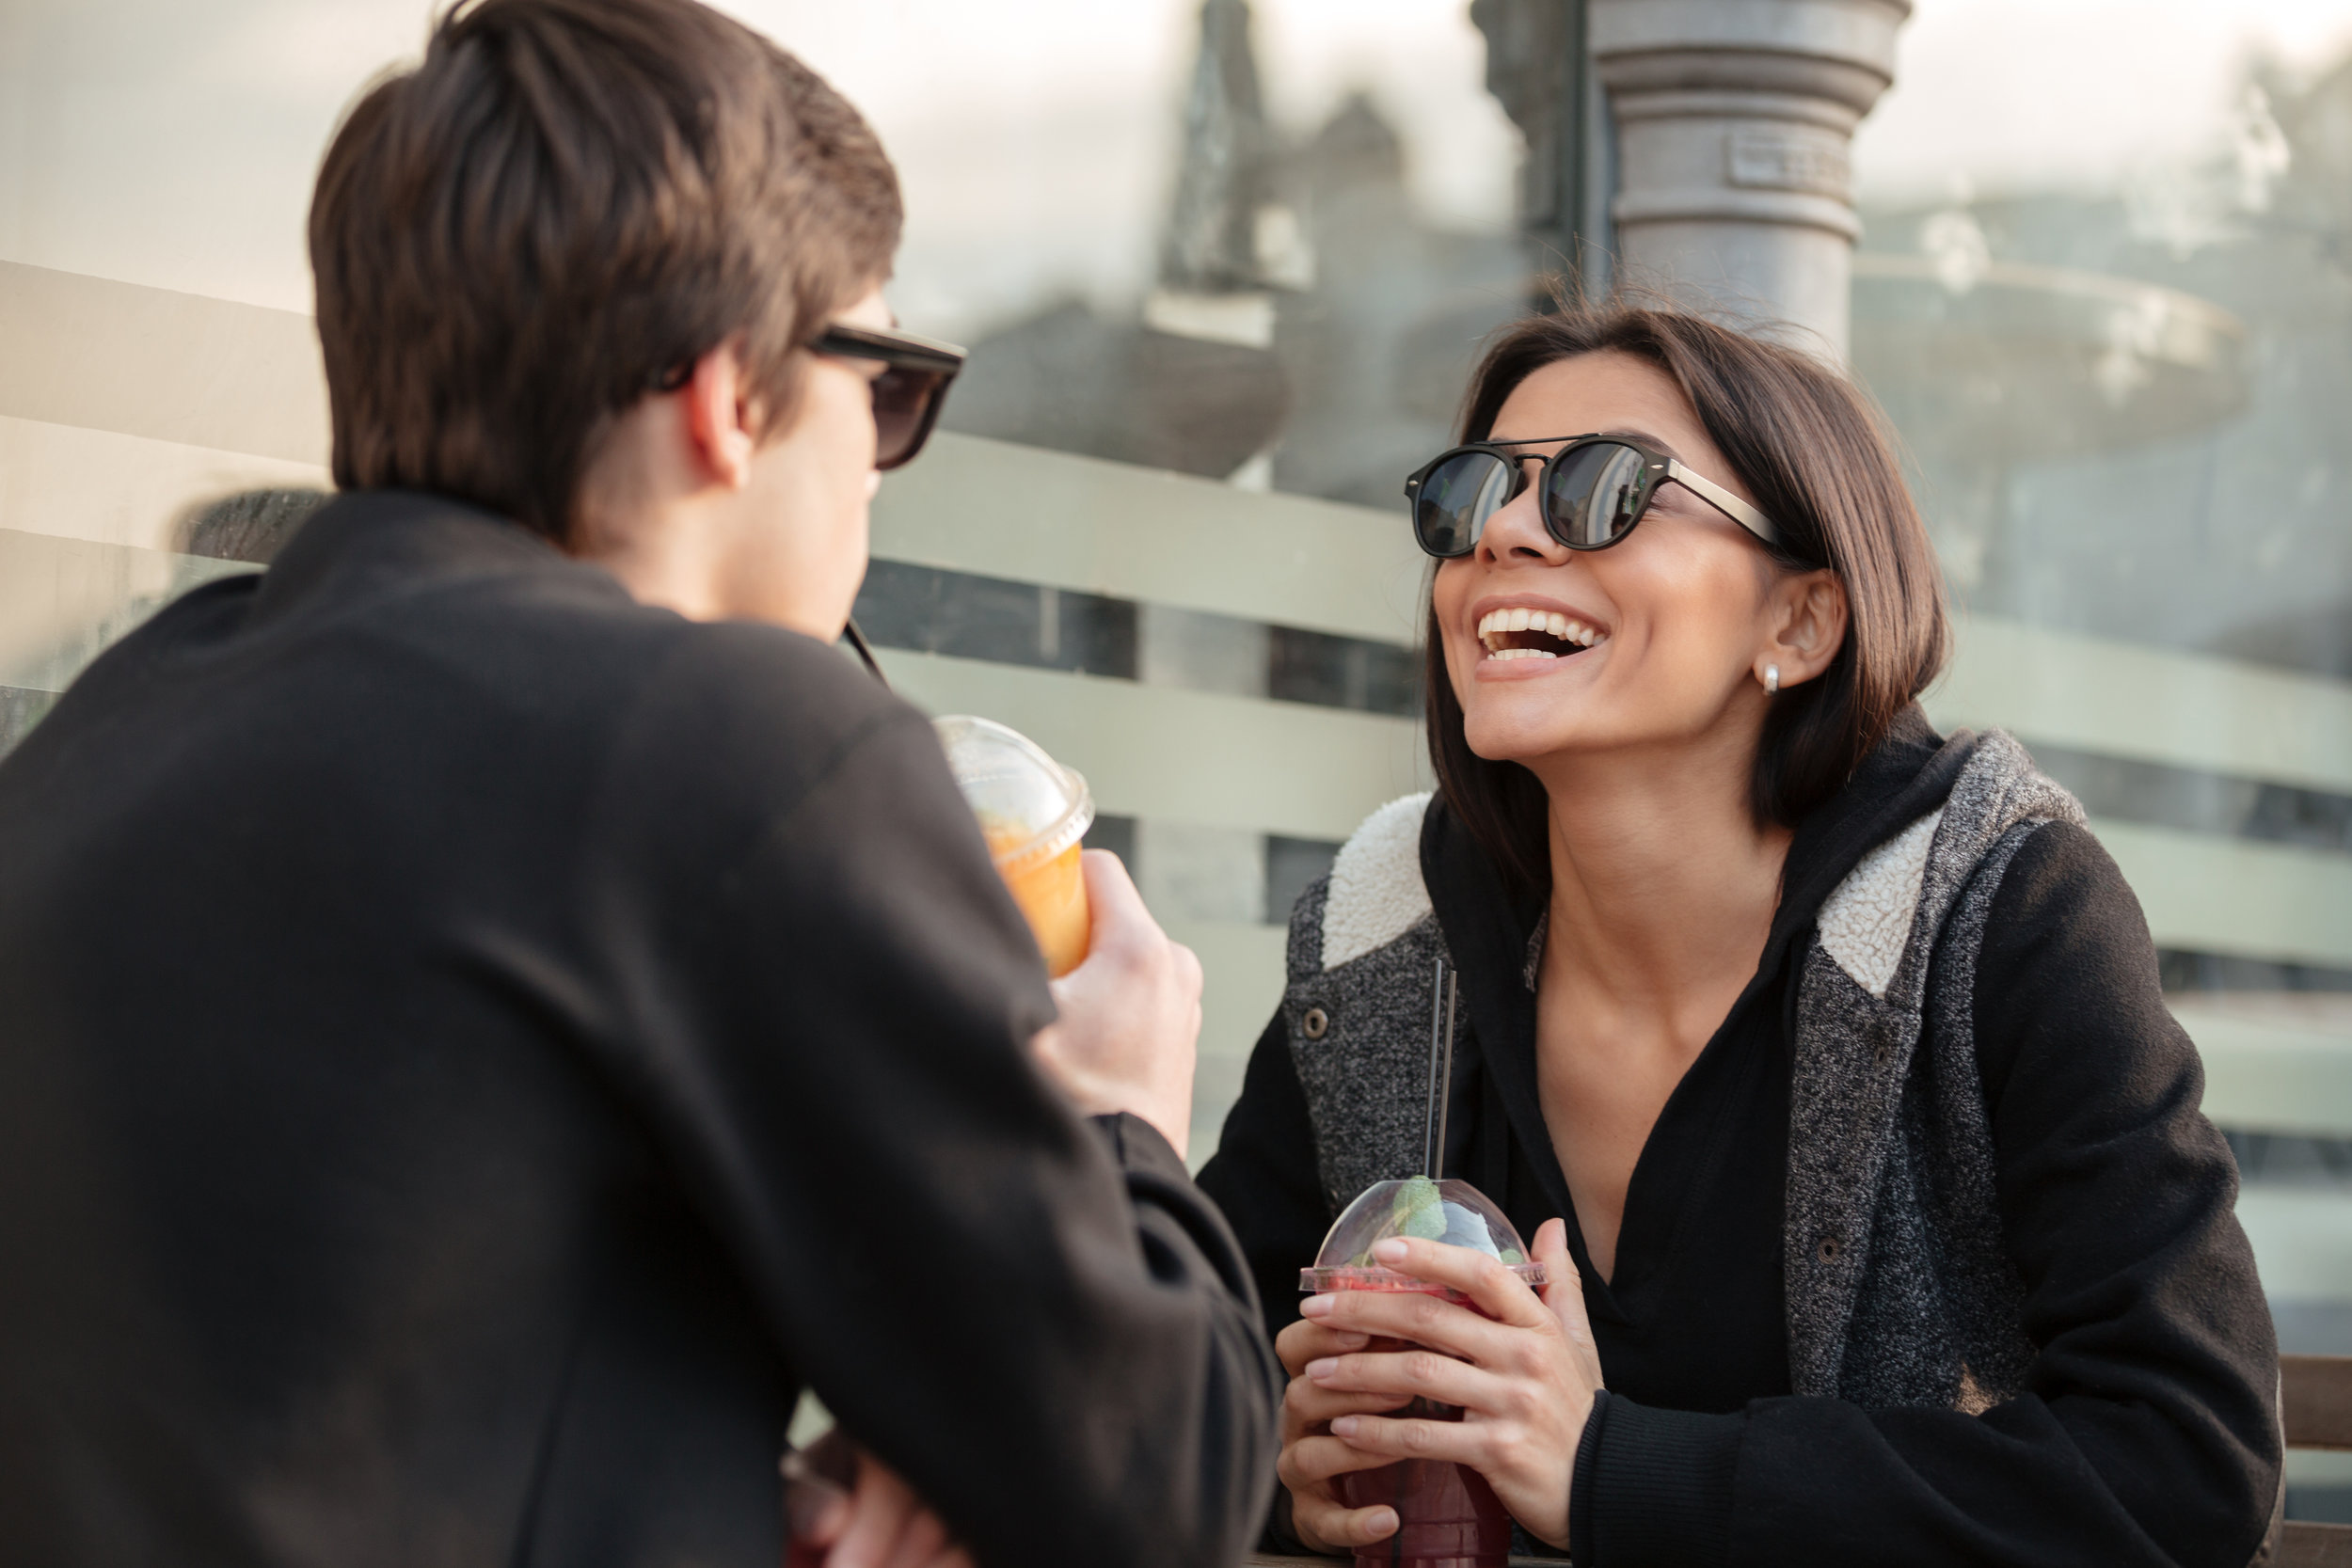 woman laughing drinking a smoothie